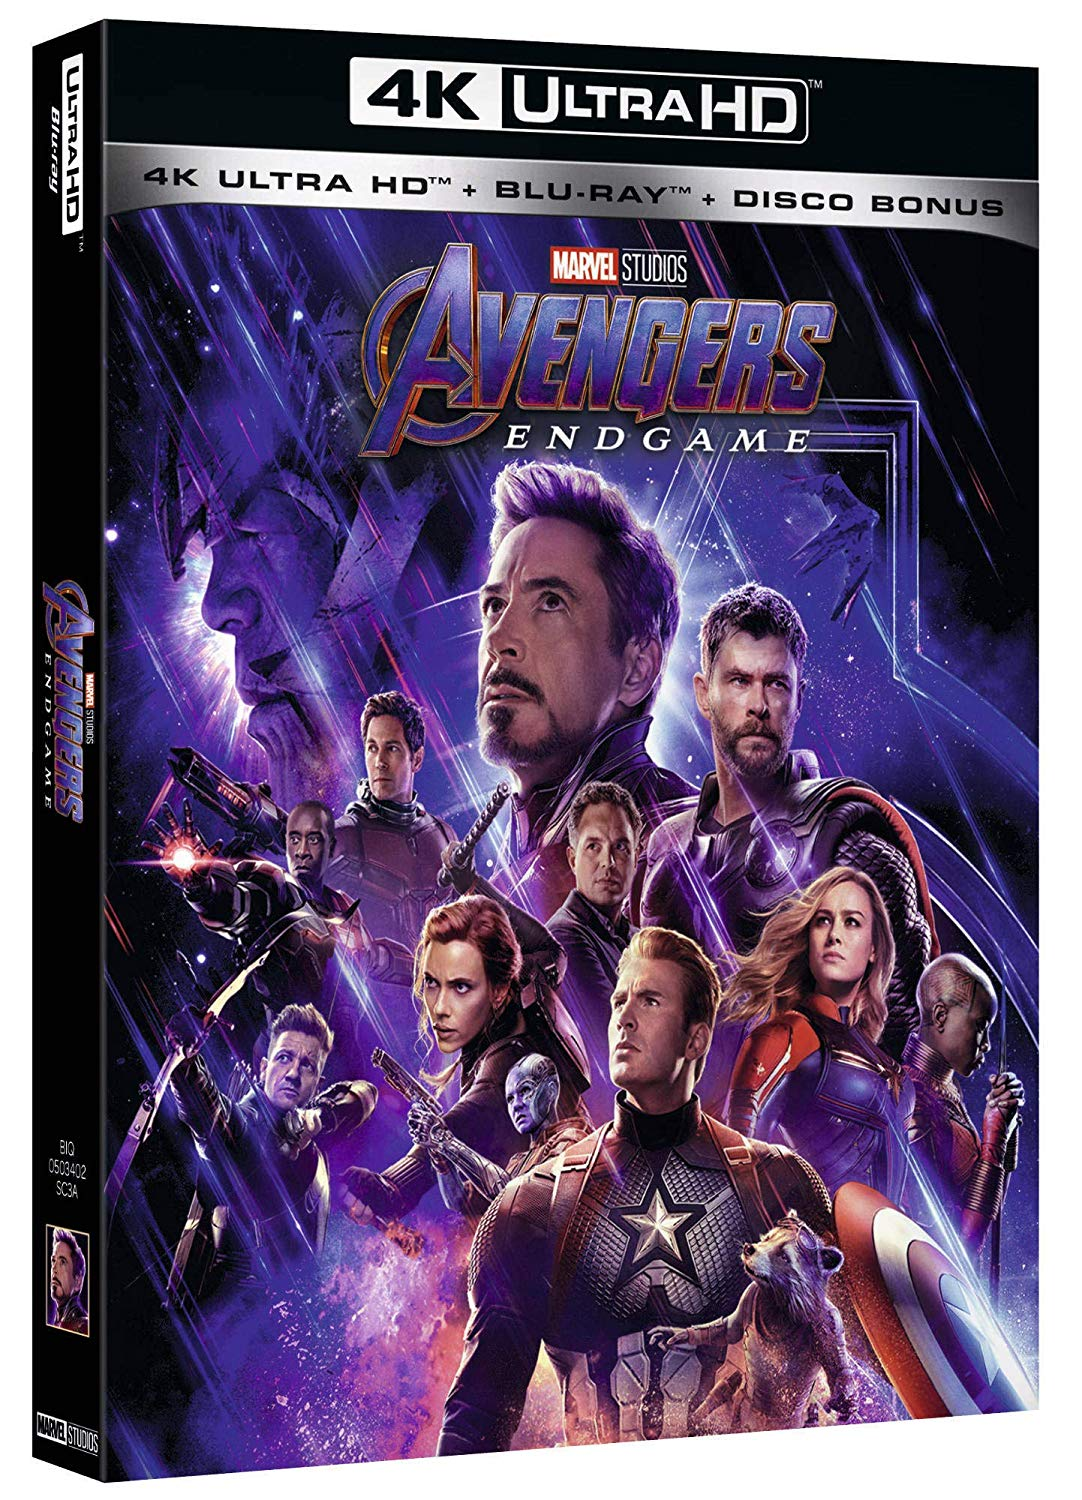 AVENGERS - ENDGAME (4K ULTRA HD+BLU-RAY+DISCO BONUS)